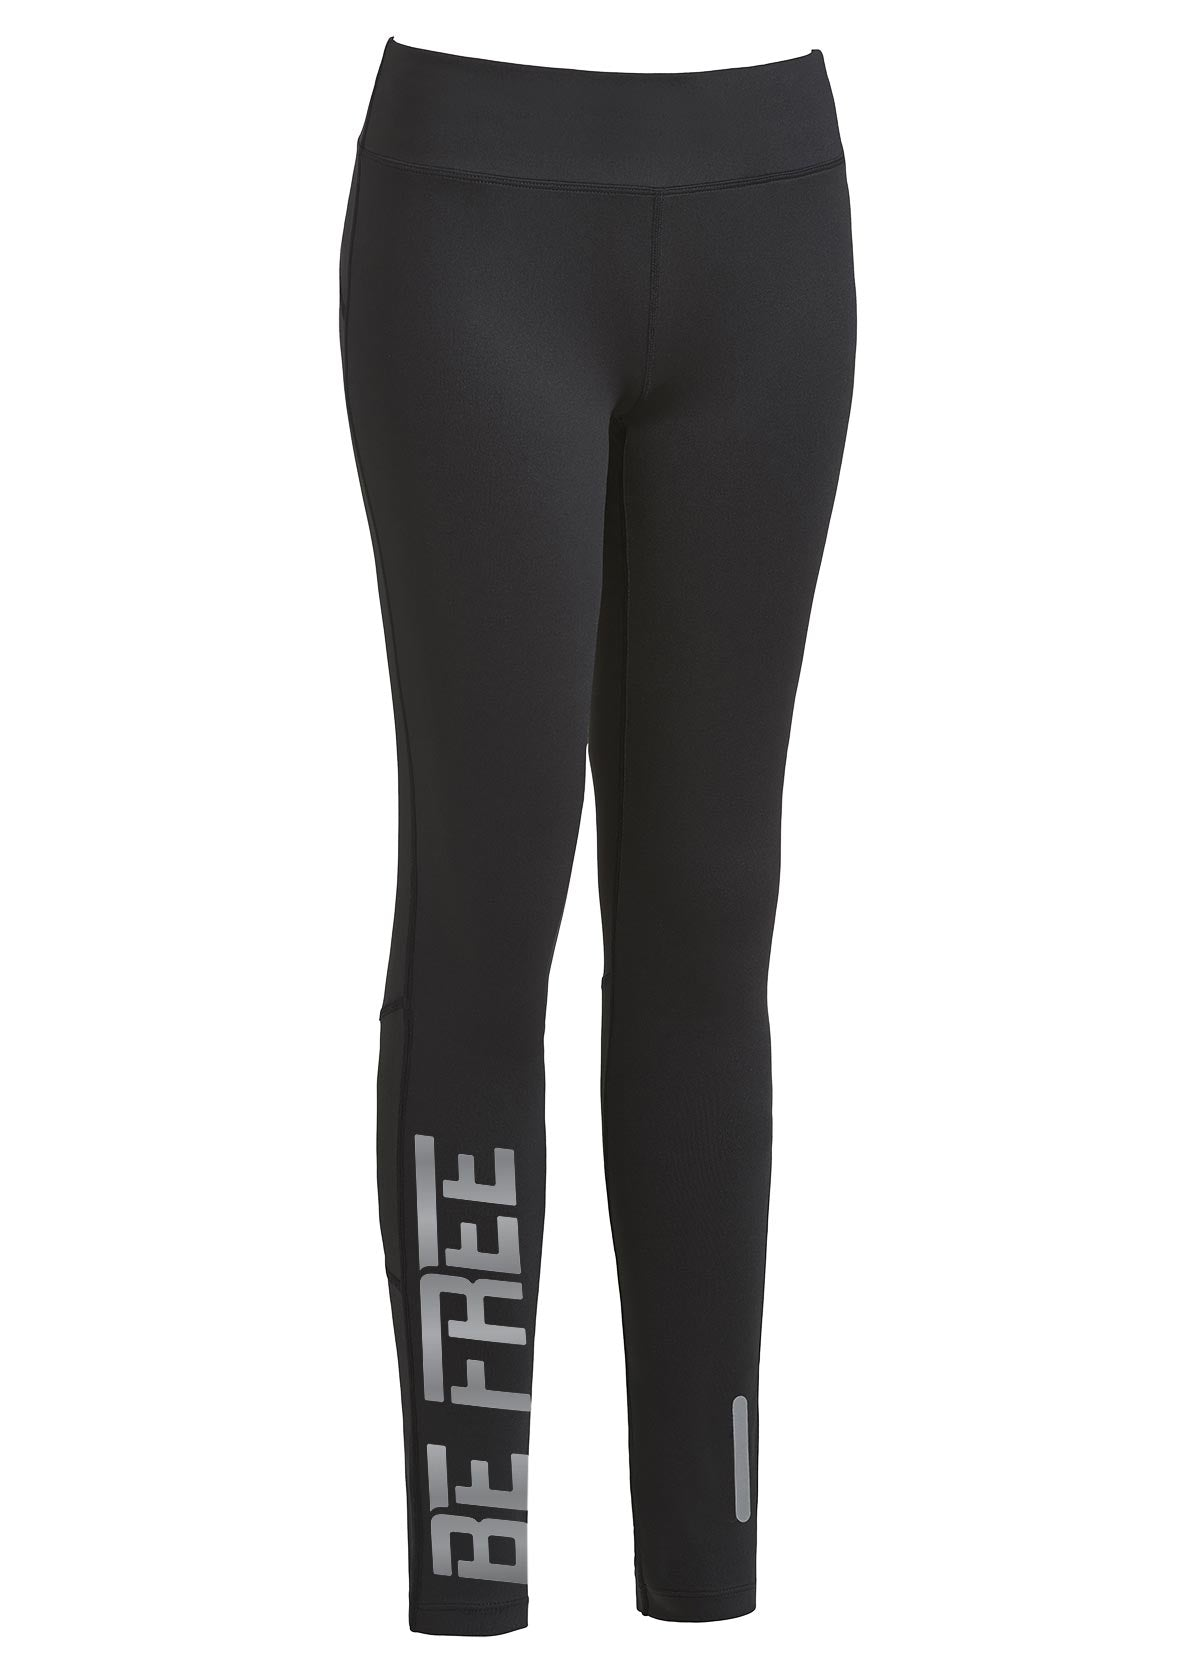 long leggings black christian athletic apparel be free